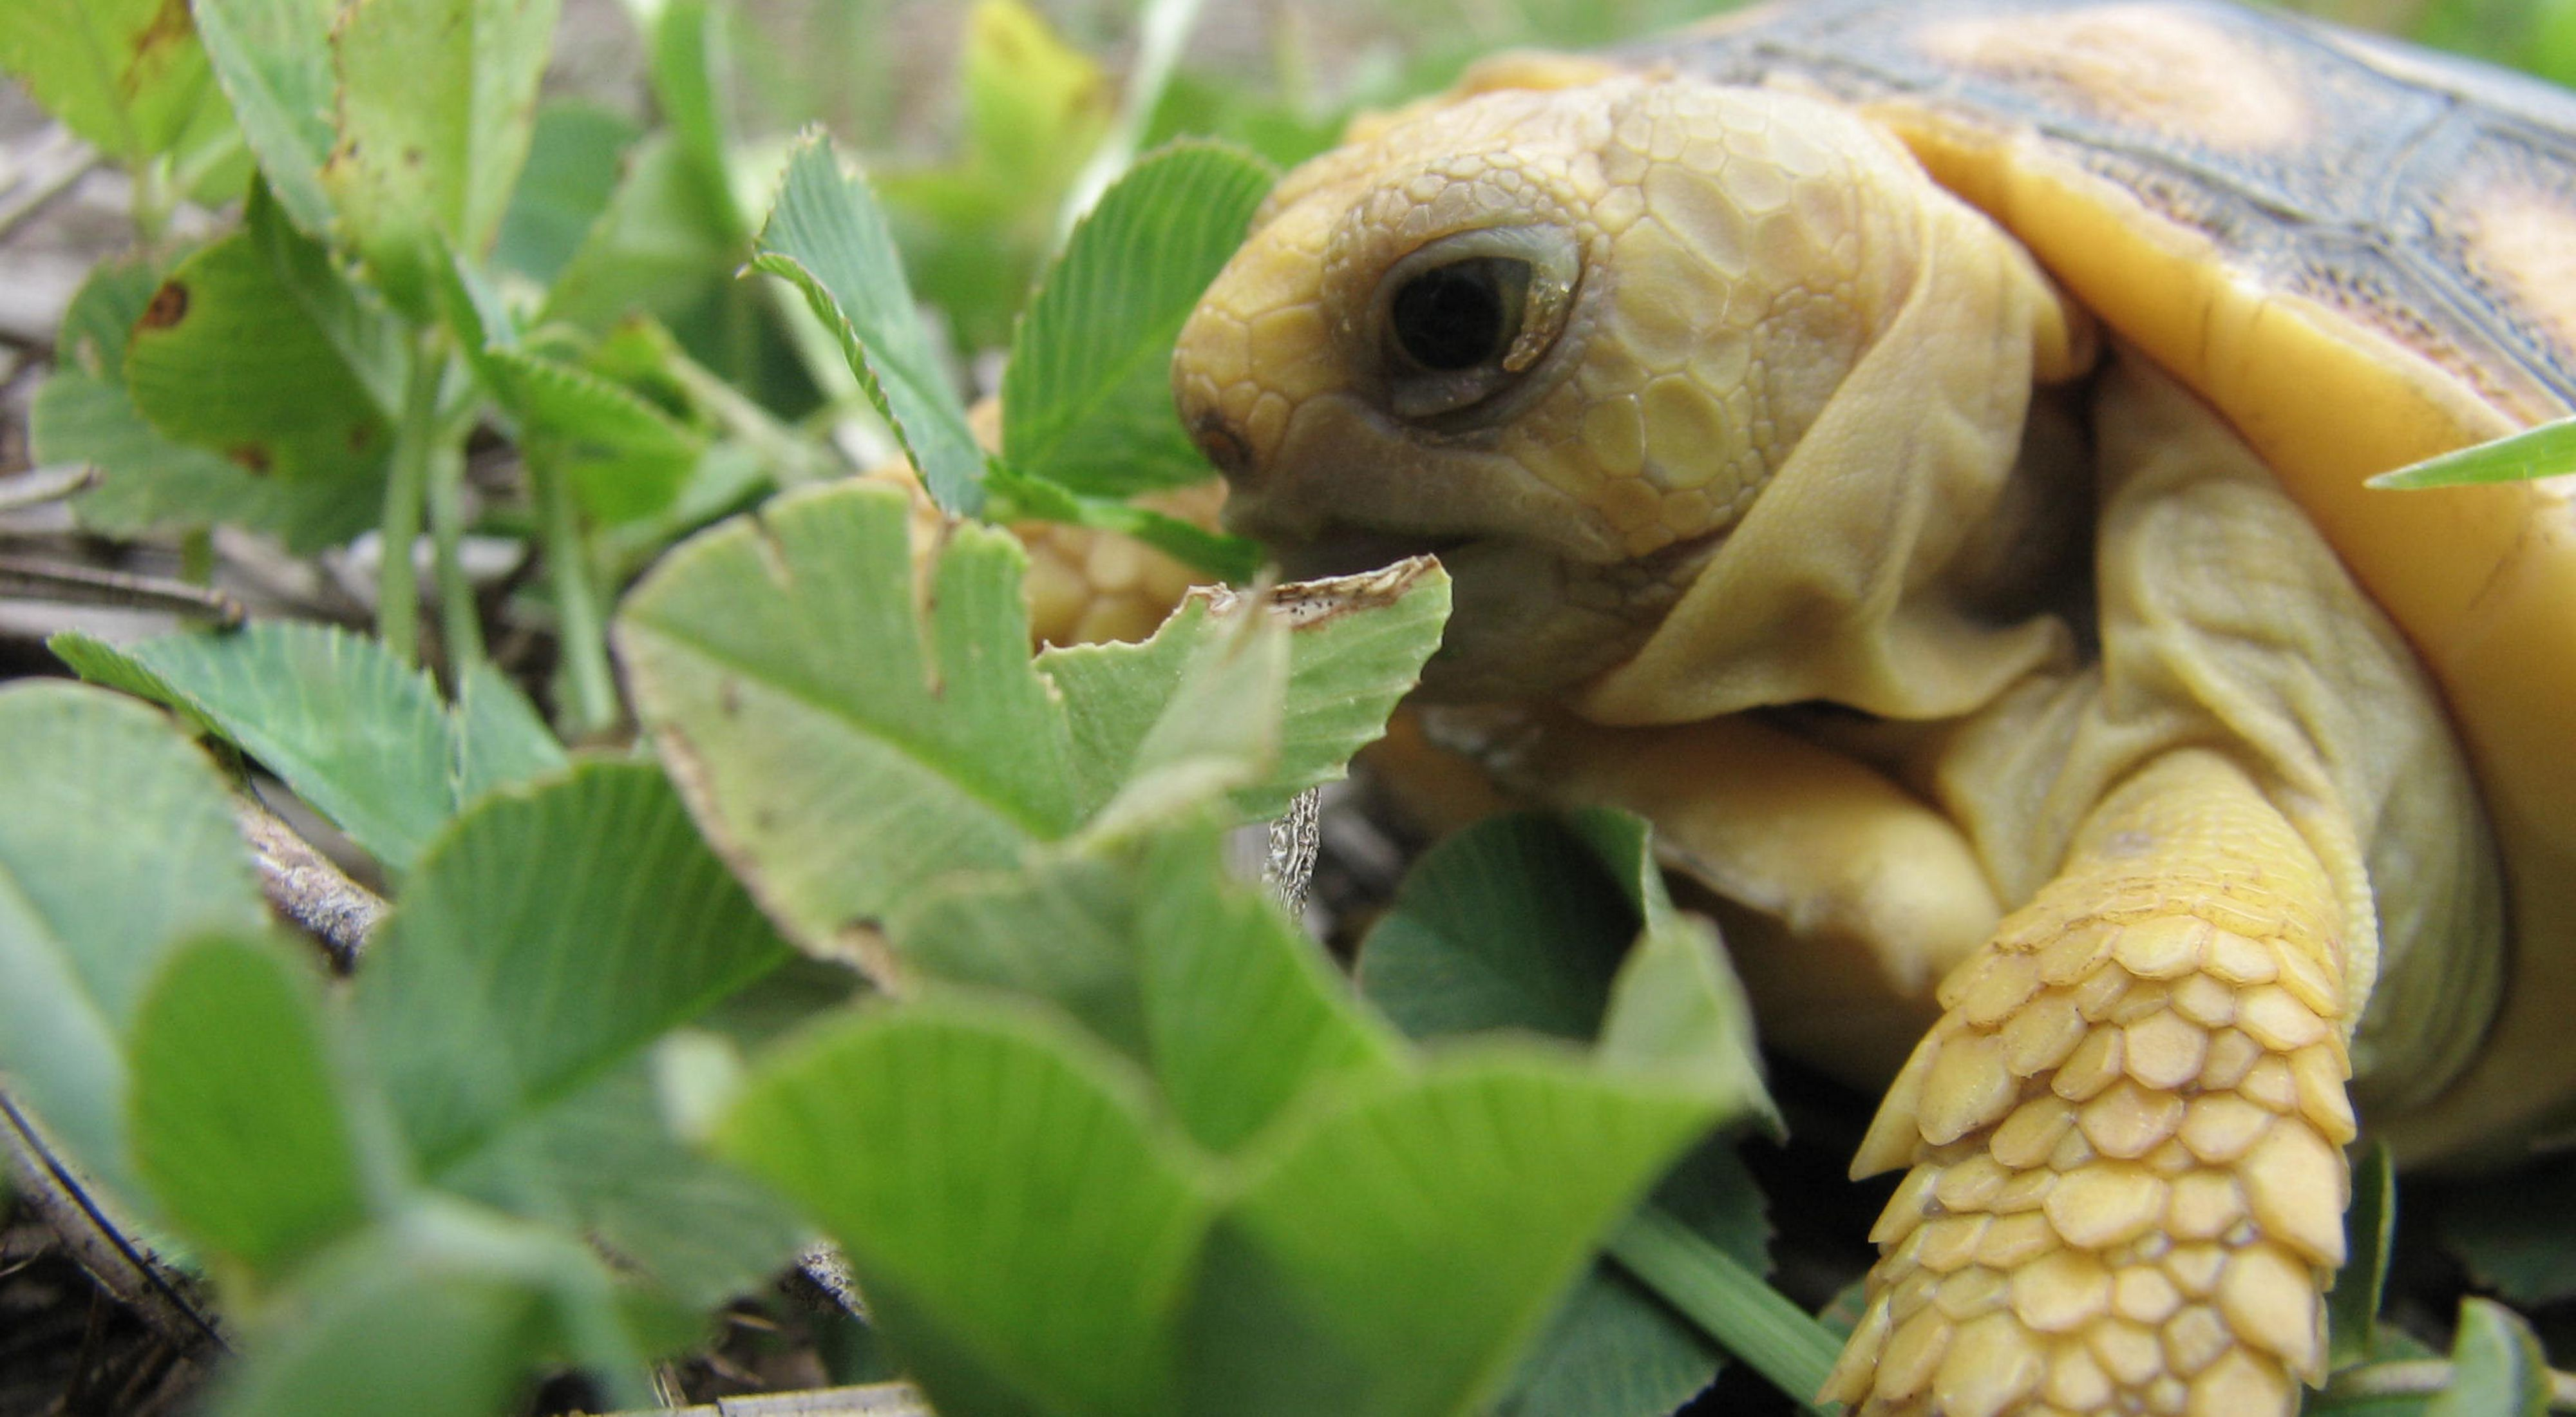 Gopher tortoise hatchling